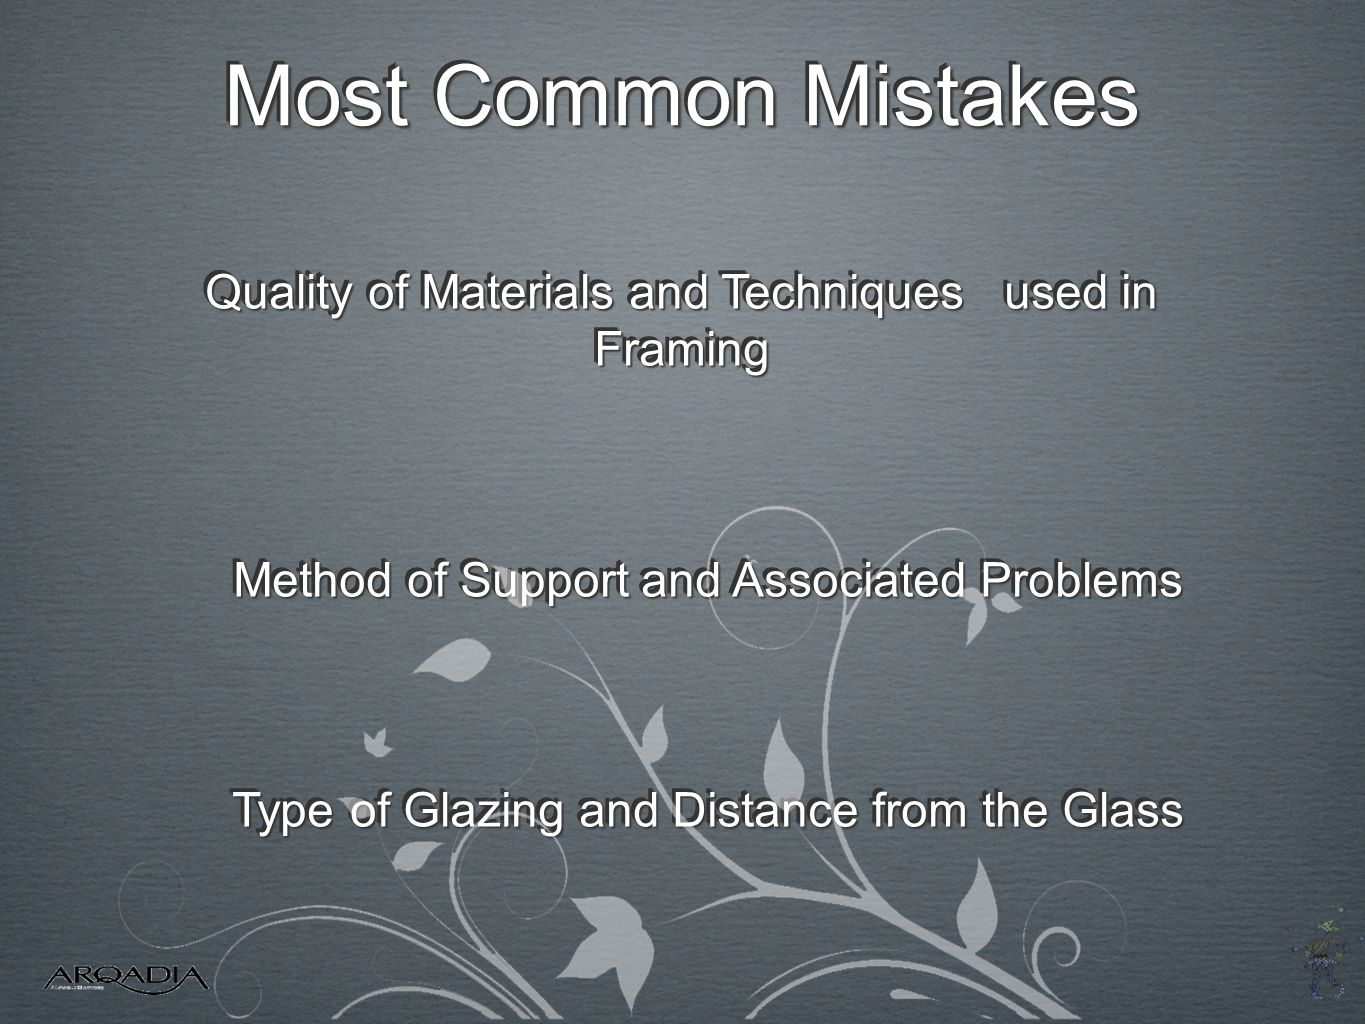 Most Common Mistakes Quality of Materials and Techniques used in Framing. Method of Support and Associated Problems.